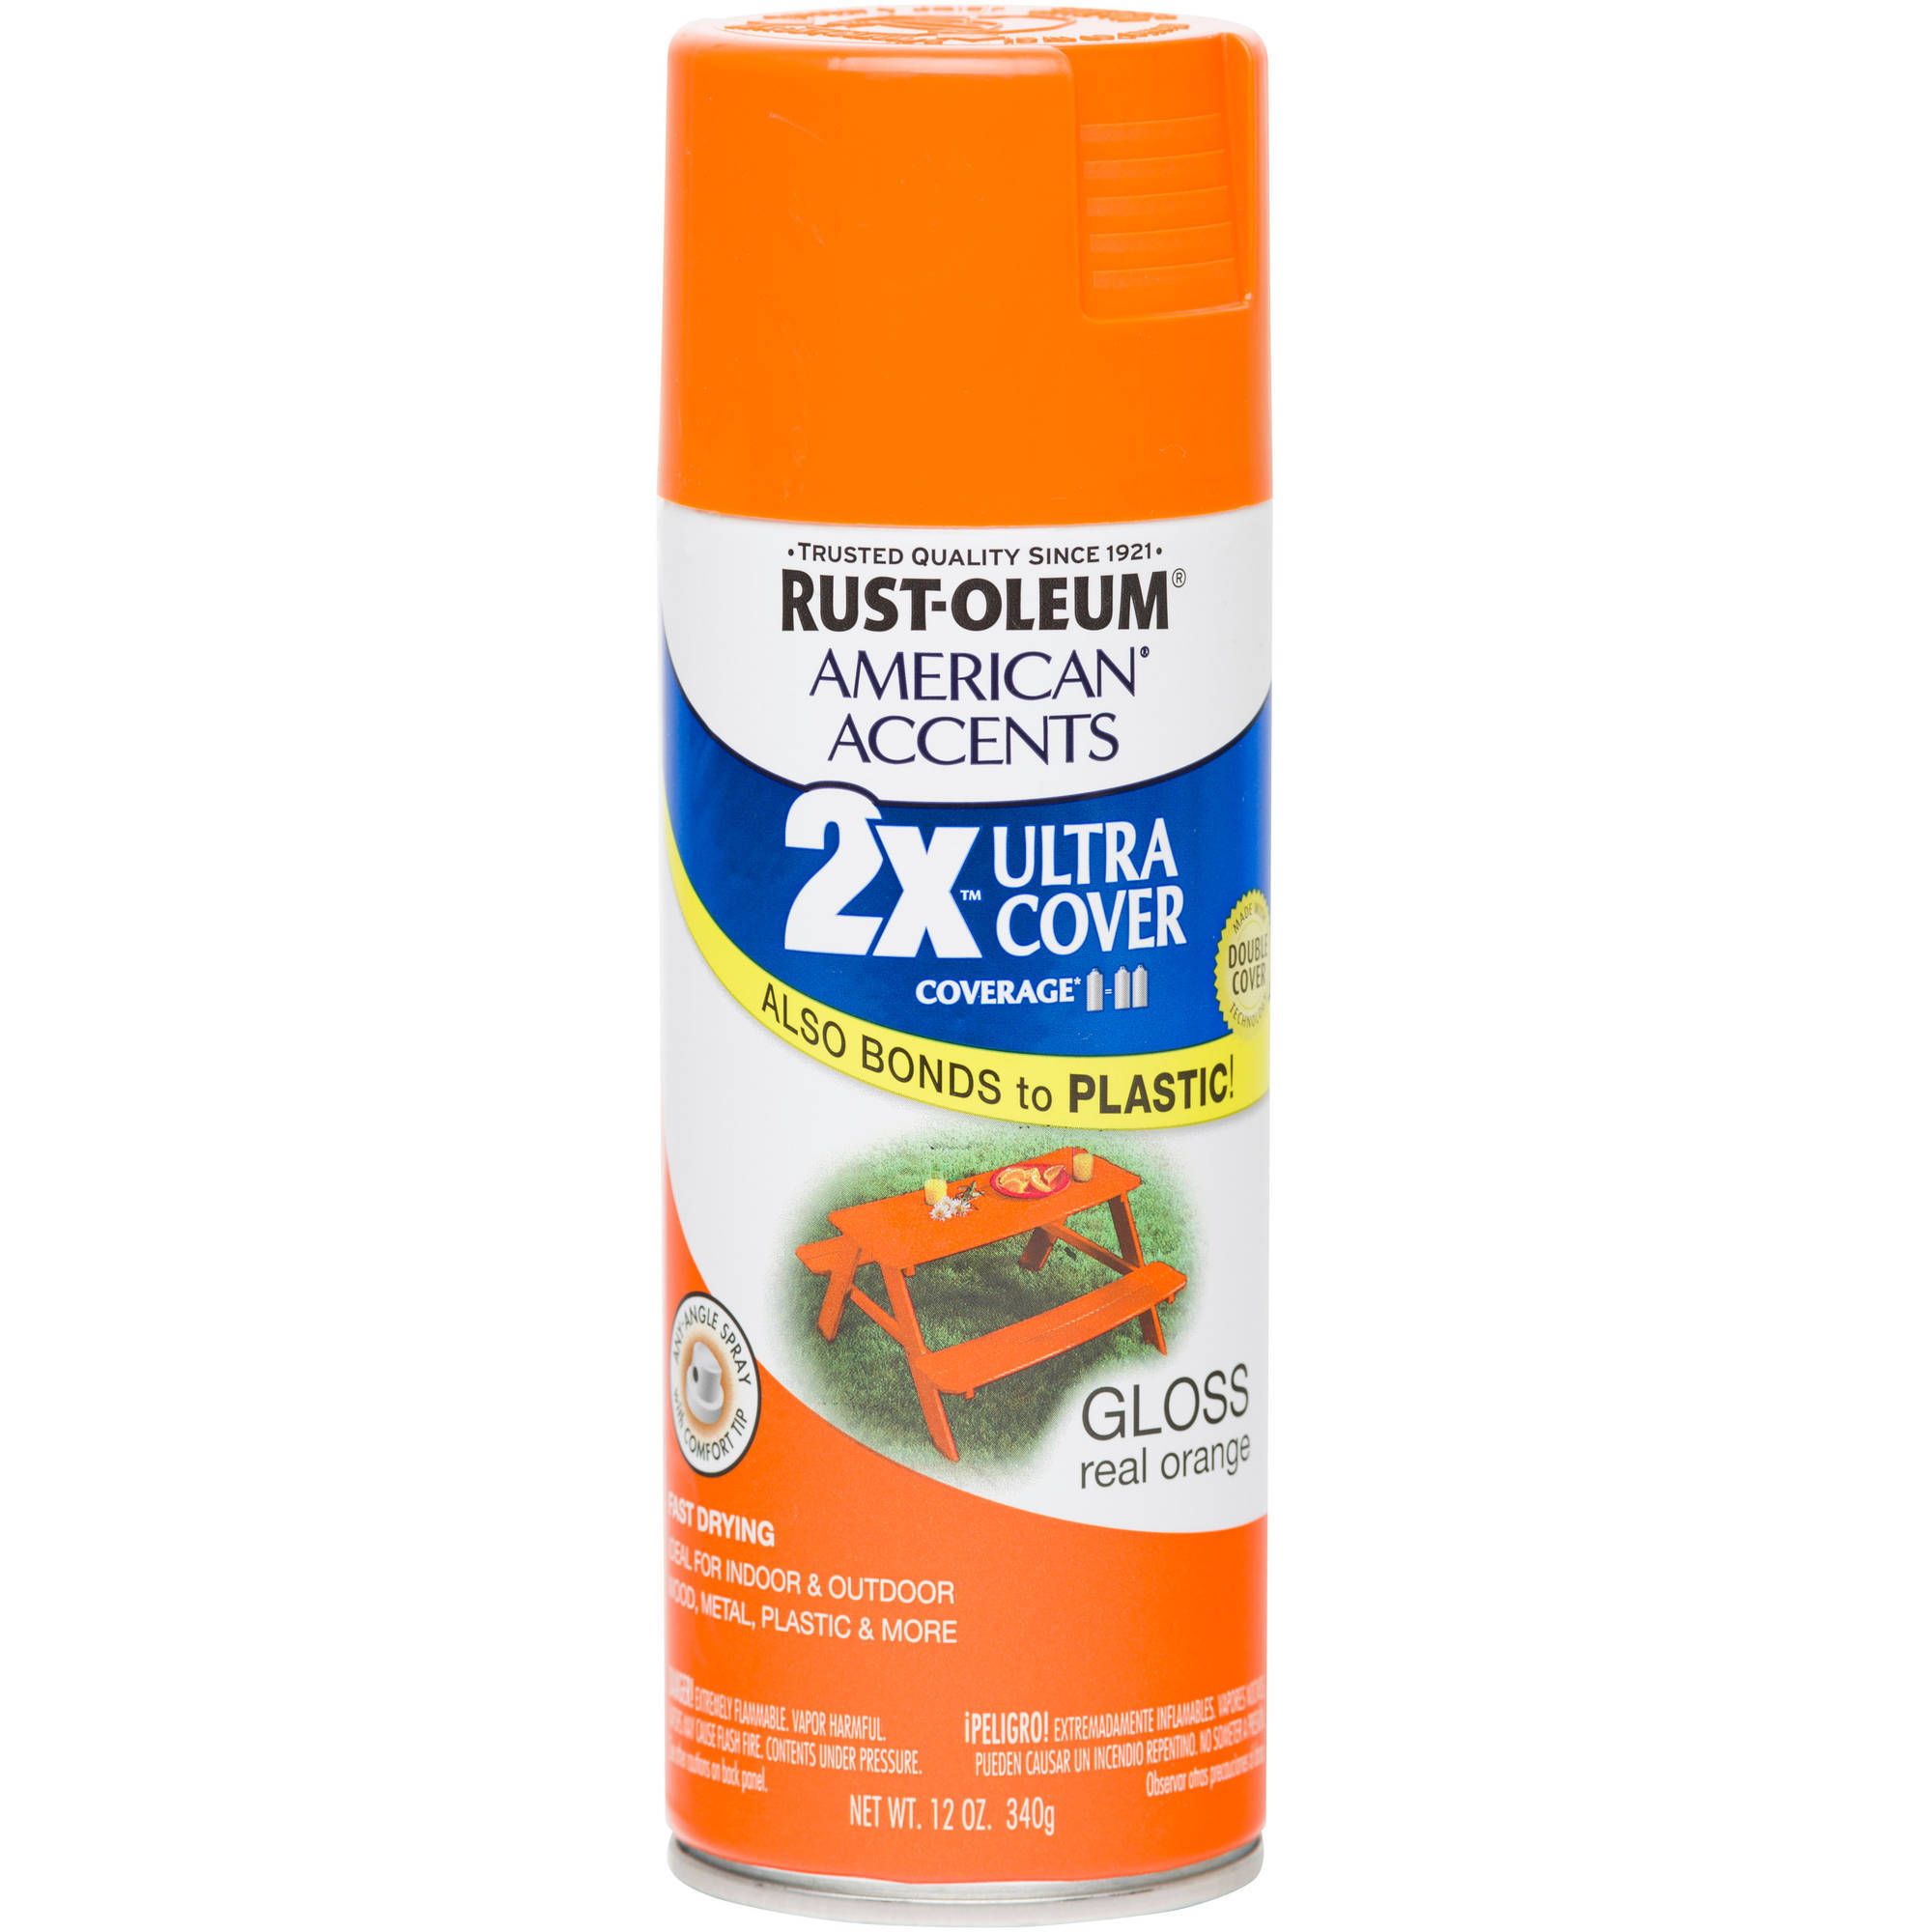 Rust-Oleum American Accents Ultra Cover 2X Gloss Real Orange Spray Paint and Primer in 1, 12 oz